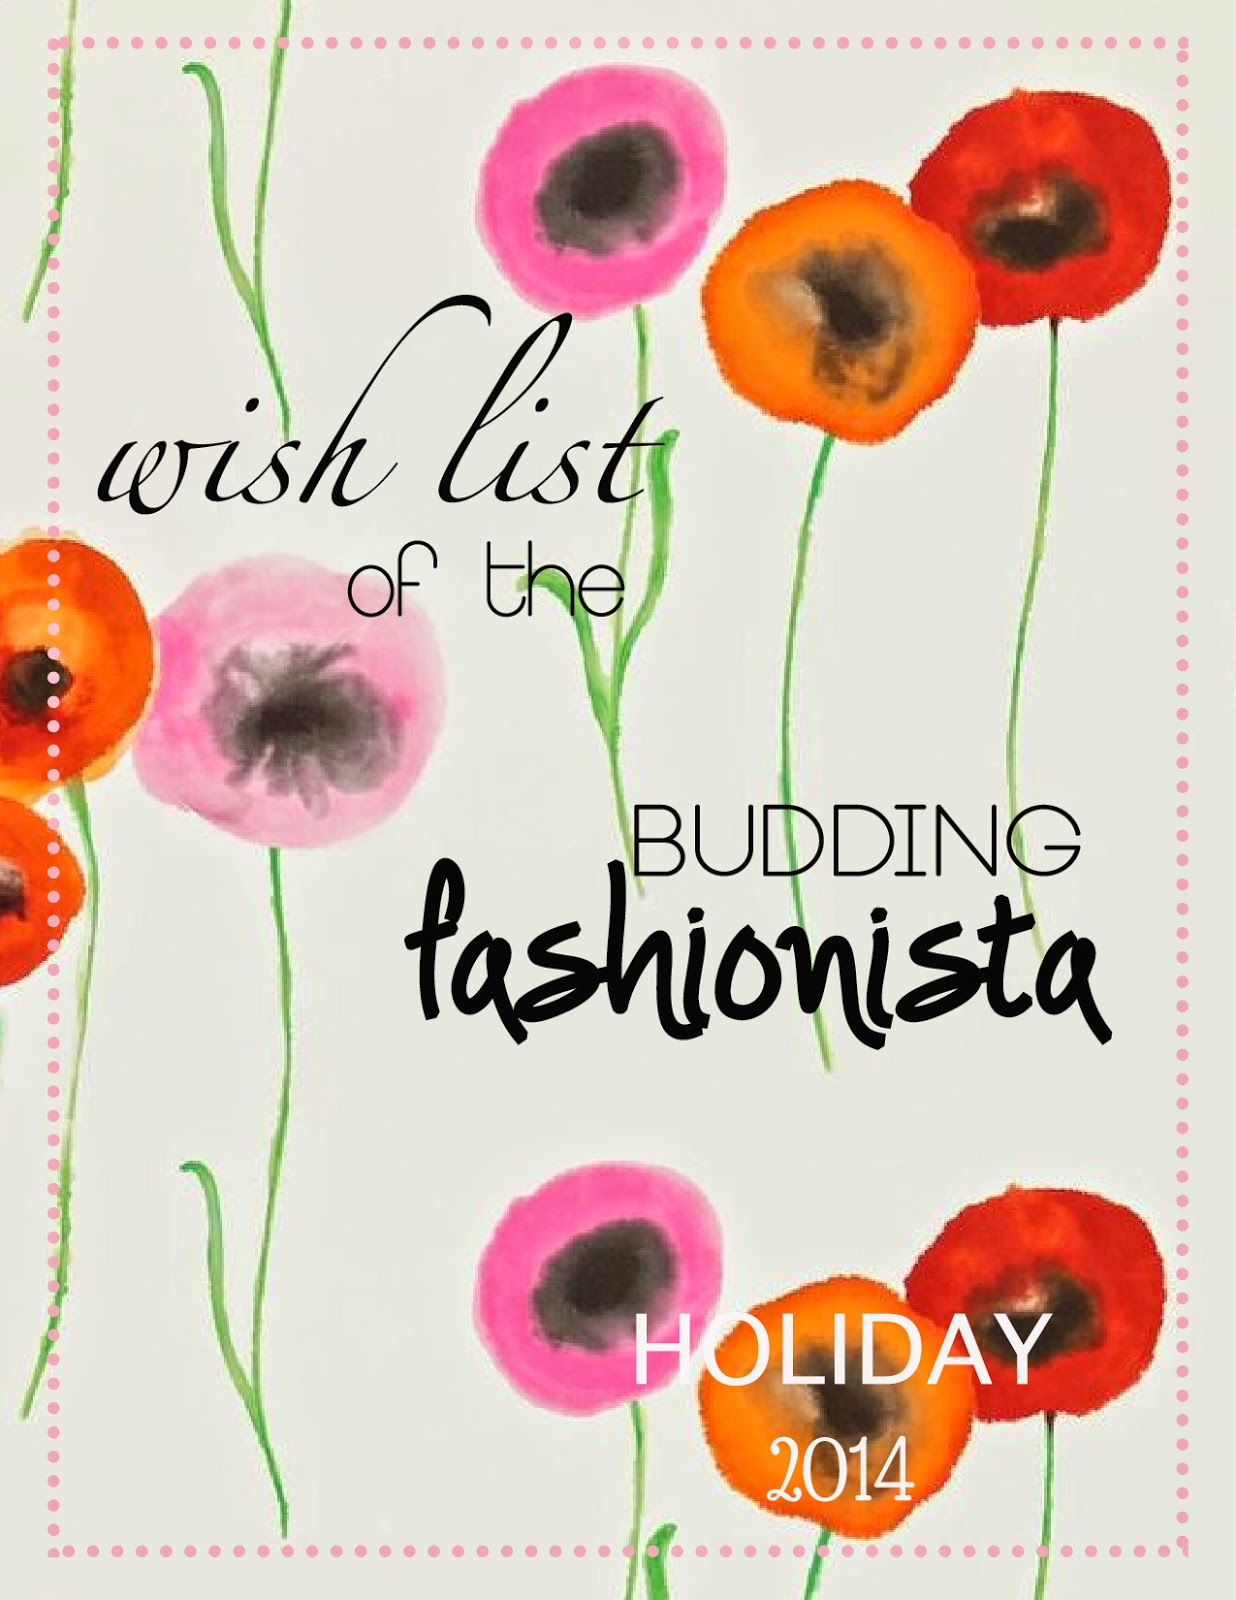 http://issuu.com/bishopboutique/docs/buddingfashionista